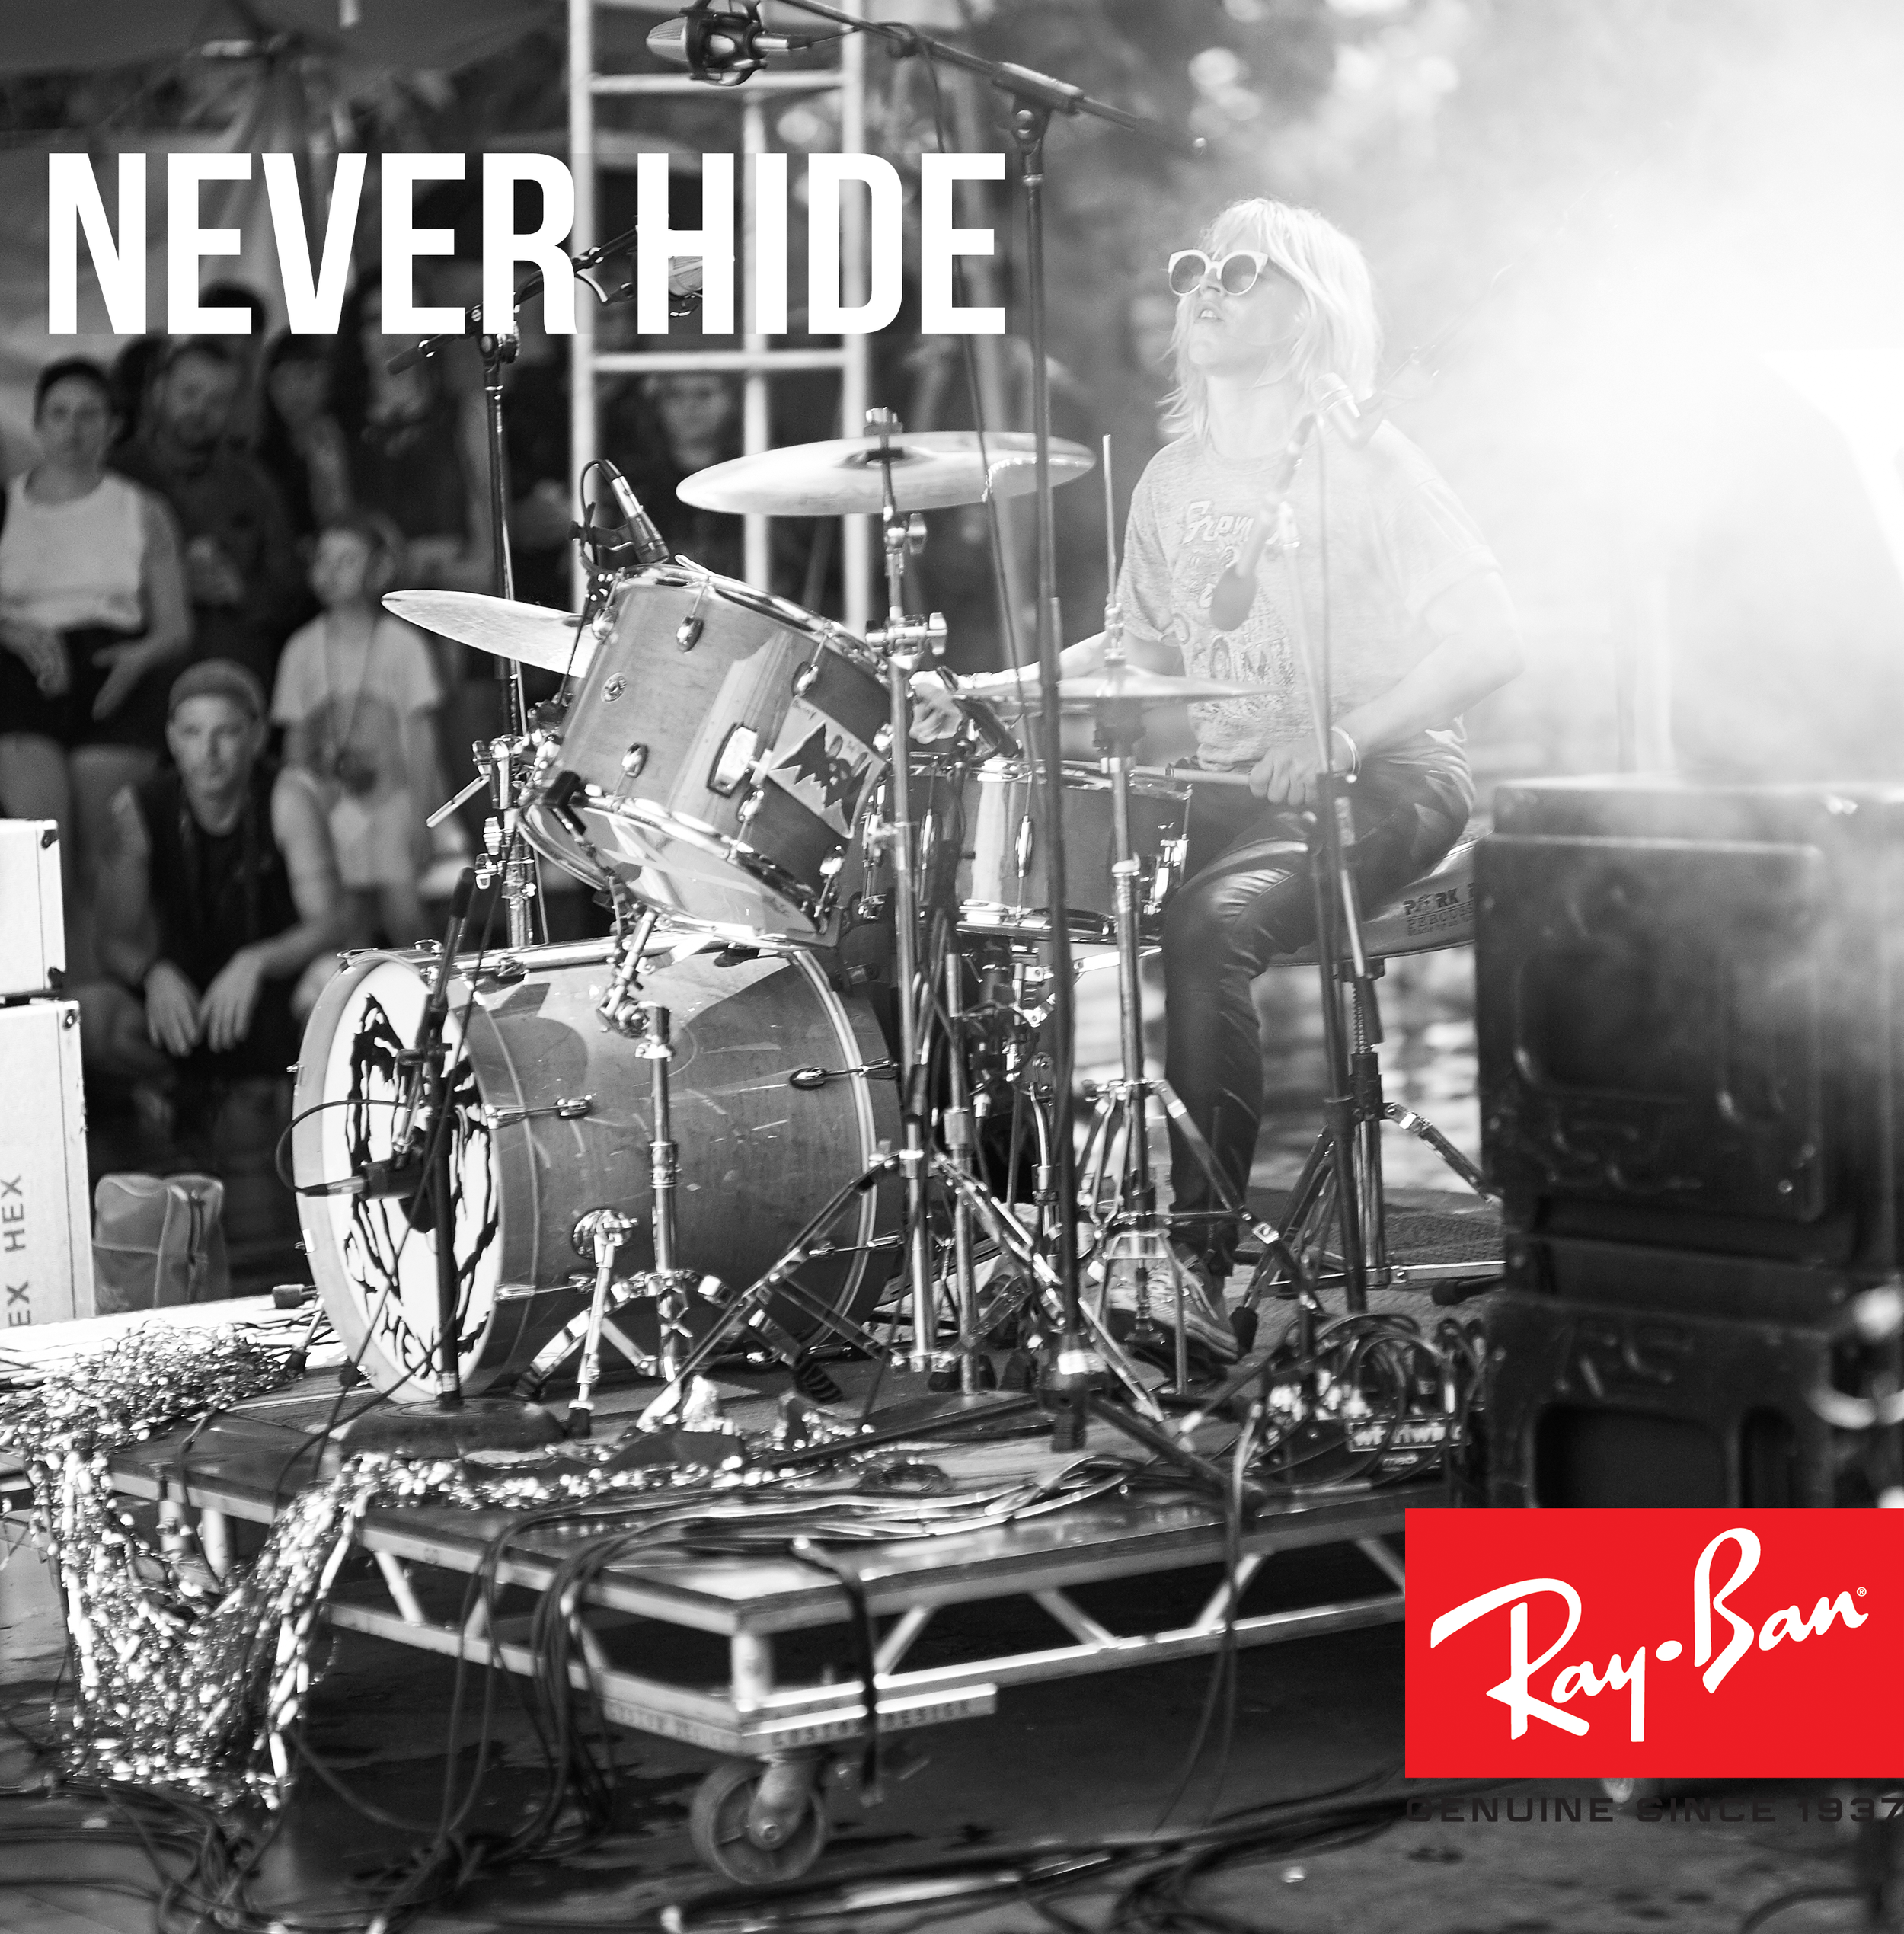 Ex Hex for Ray Ban